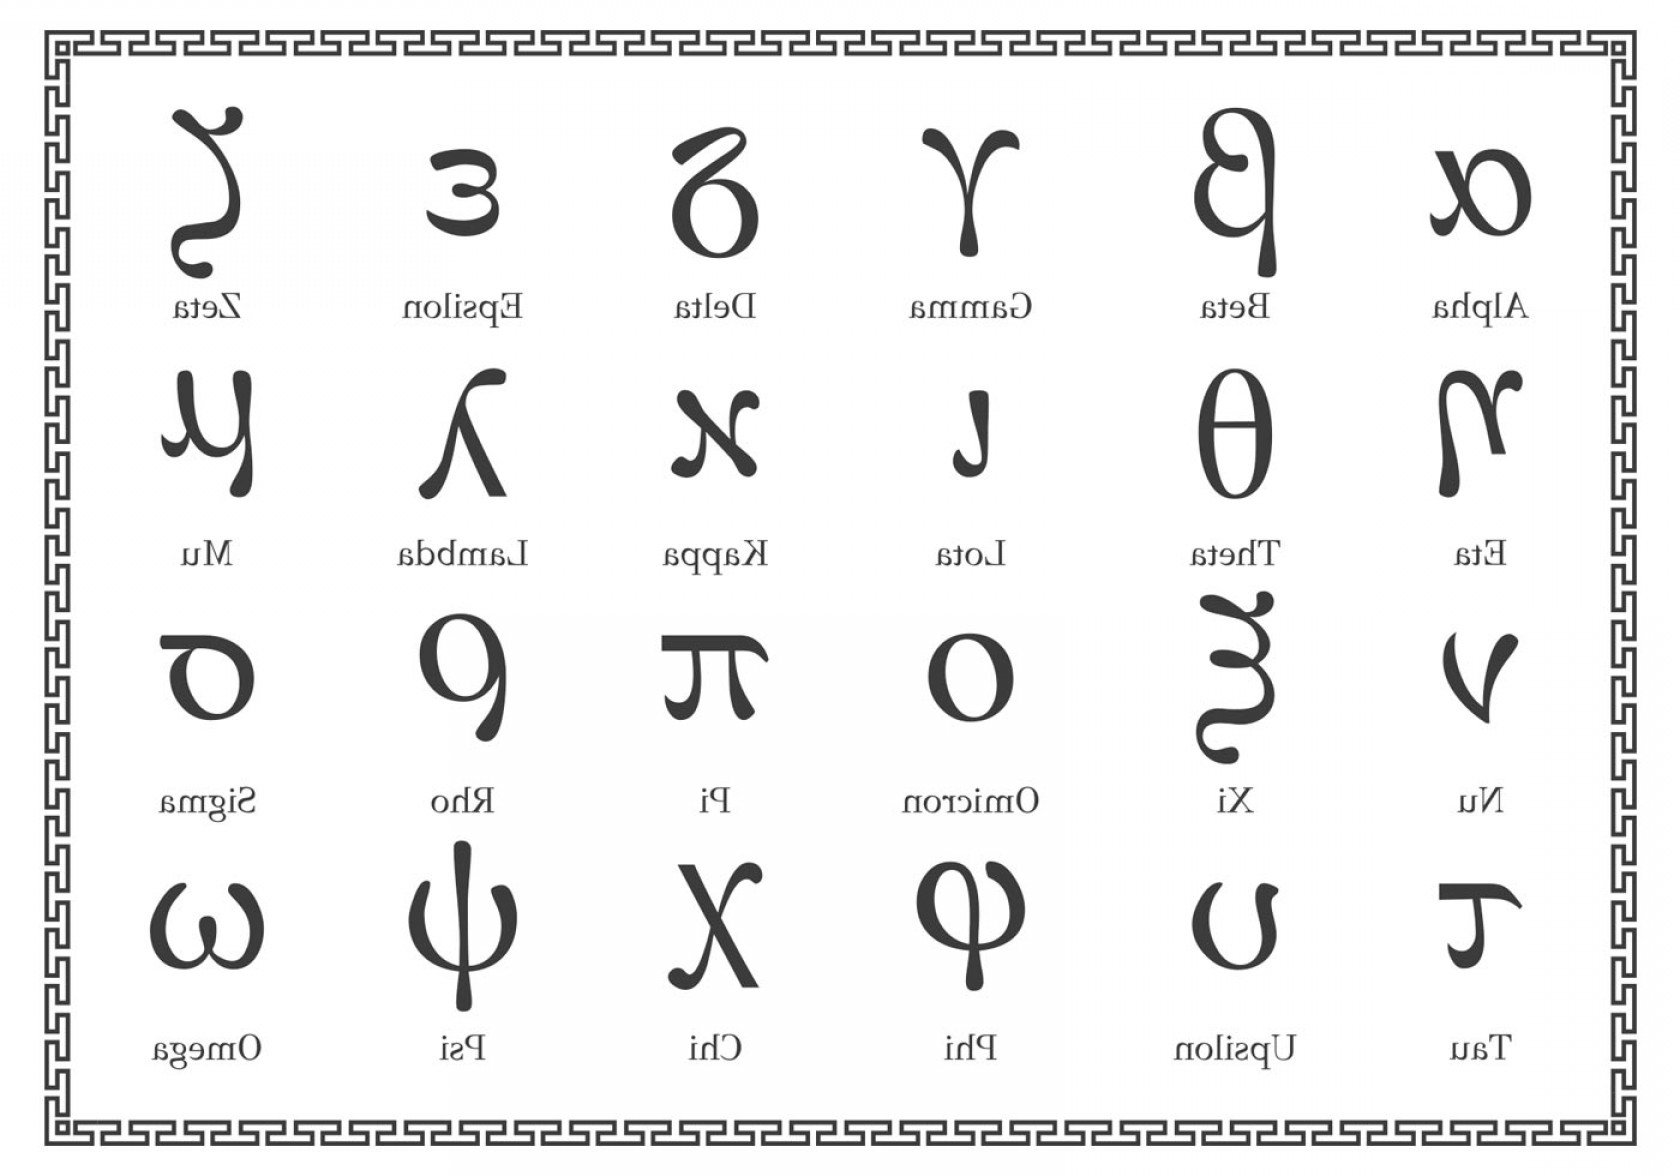 Letters Symbols Vector Art: Free Greek Alphabet Lowercase Vector